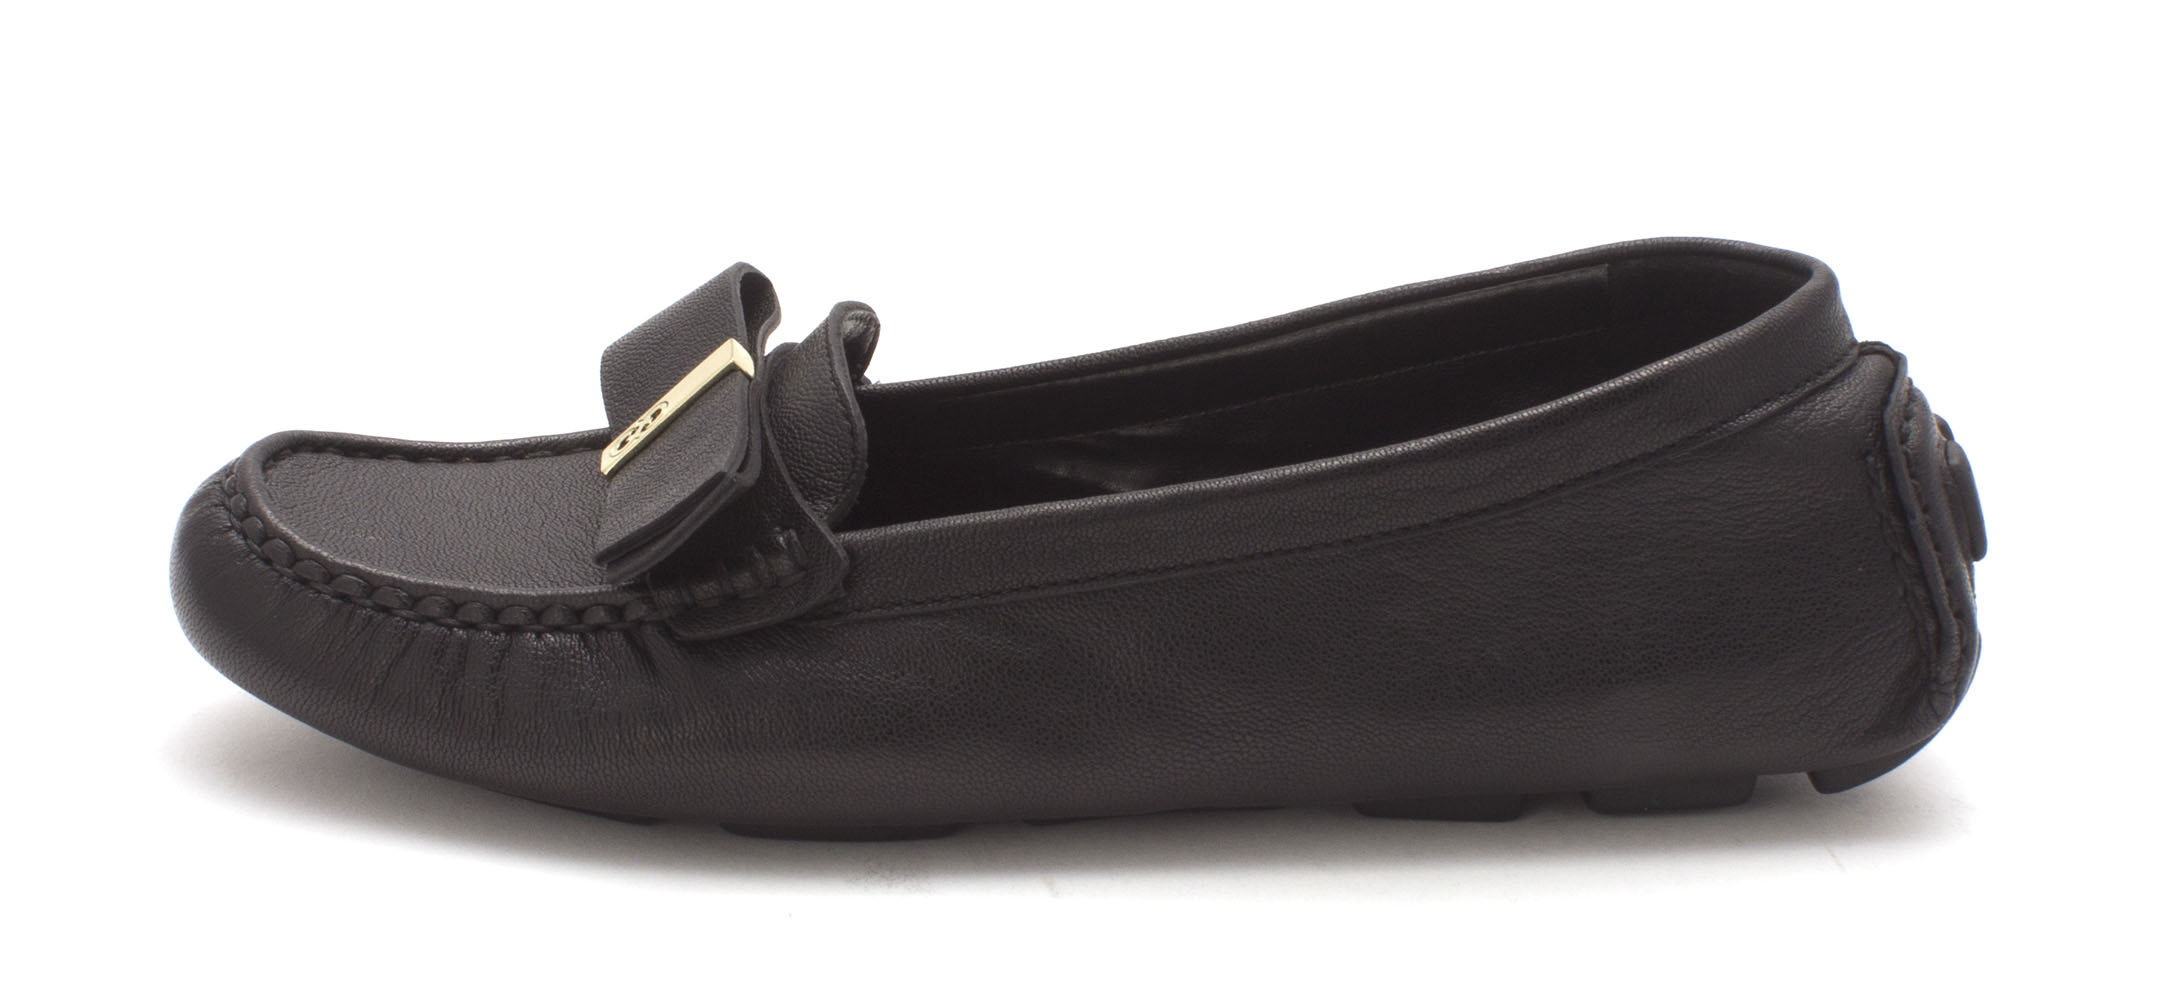 Cole Haan Womens Shelby Closed Toe, Black, Size 6.0